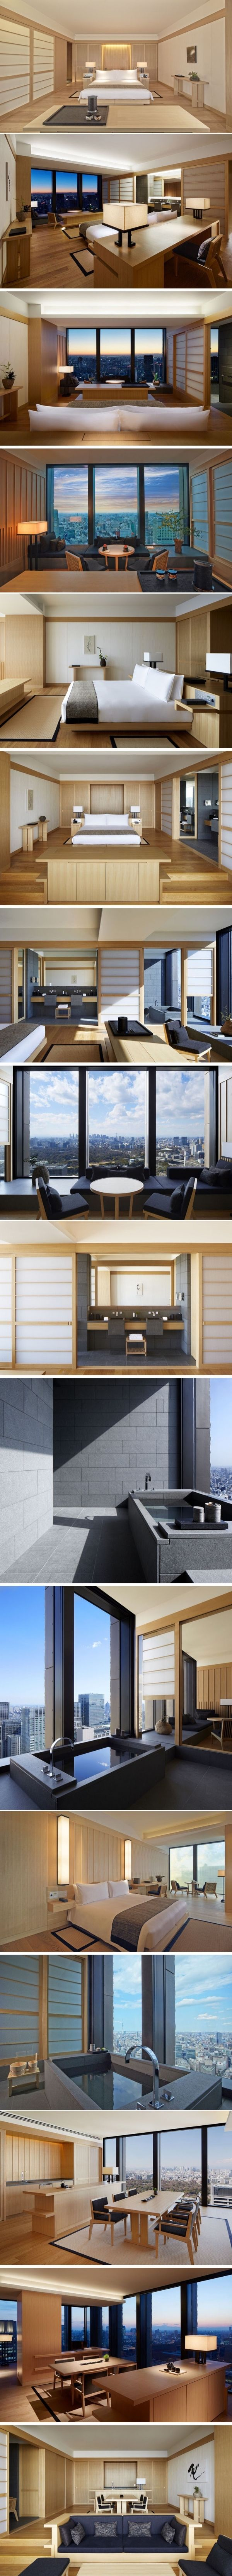 How-to mix contemporary interior design with elements of Japanese ...